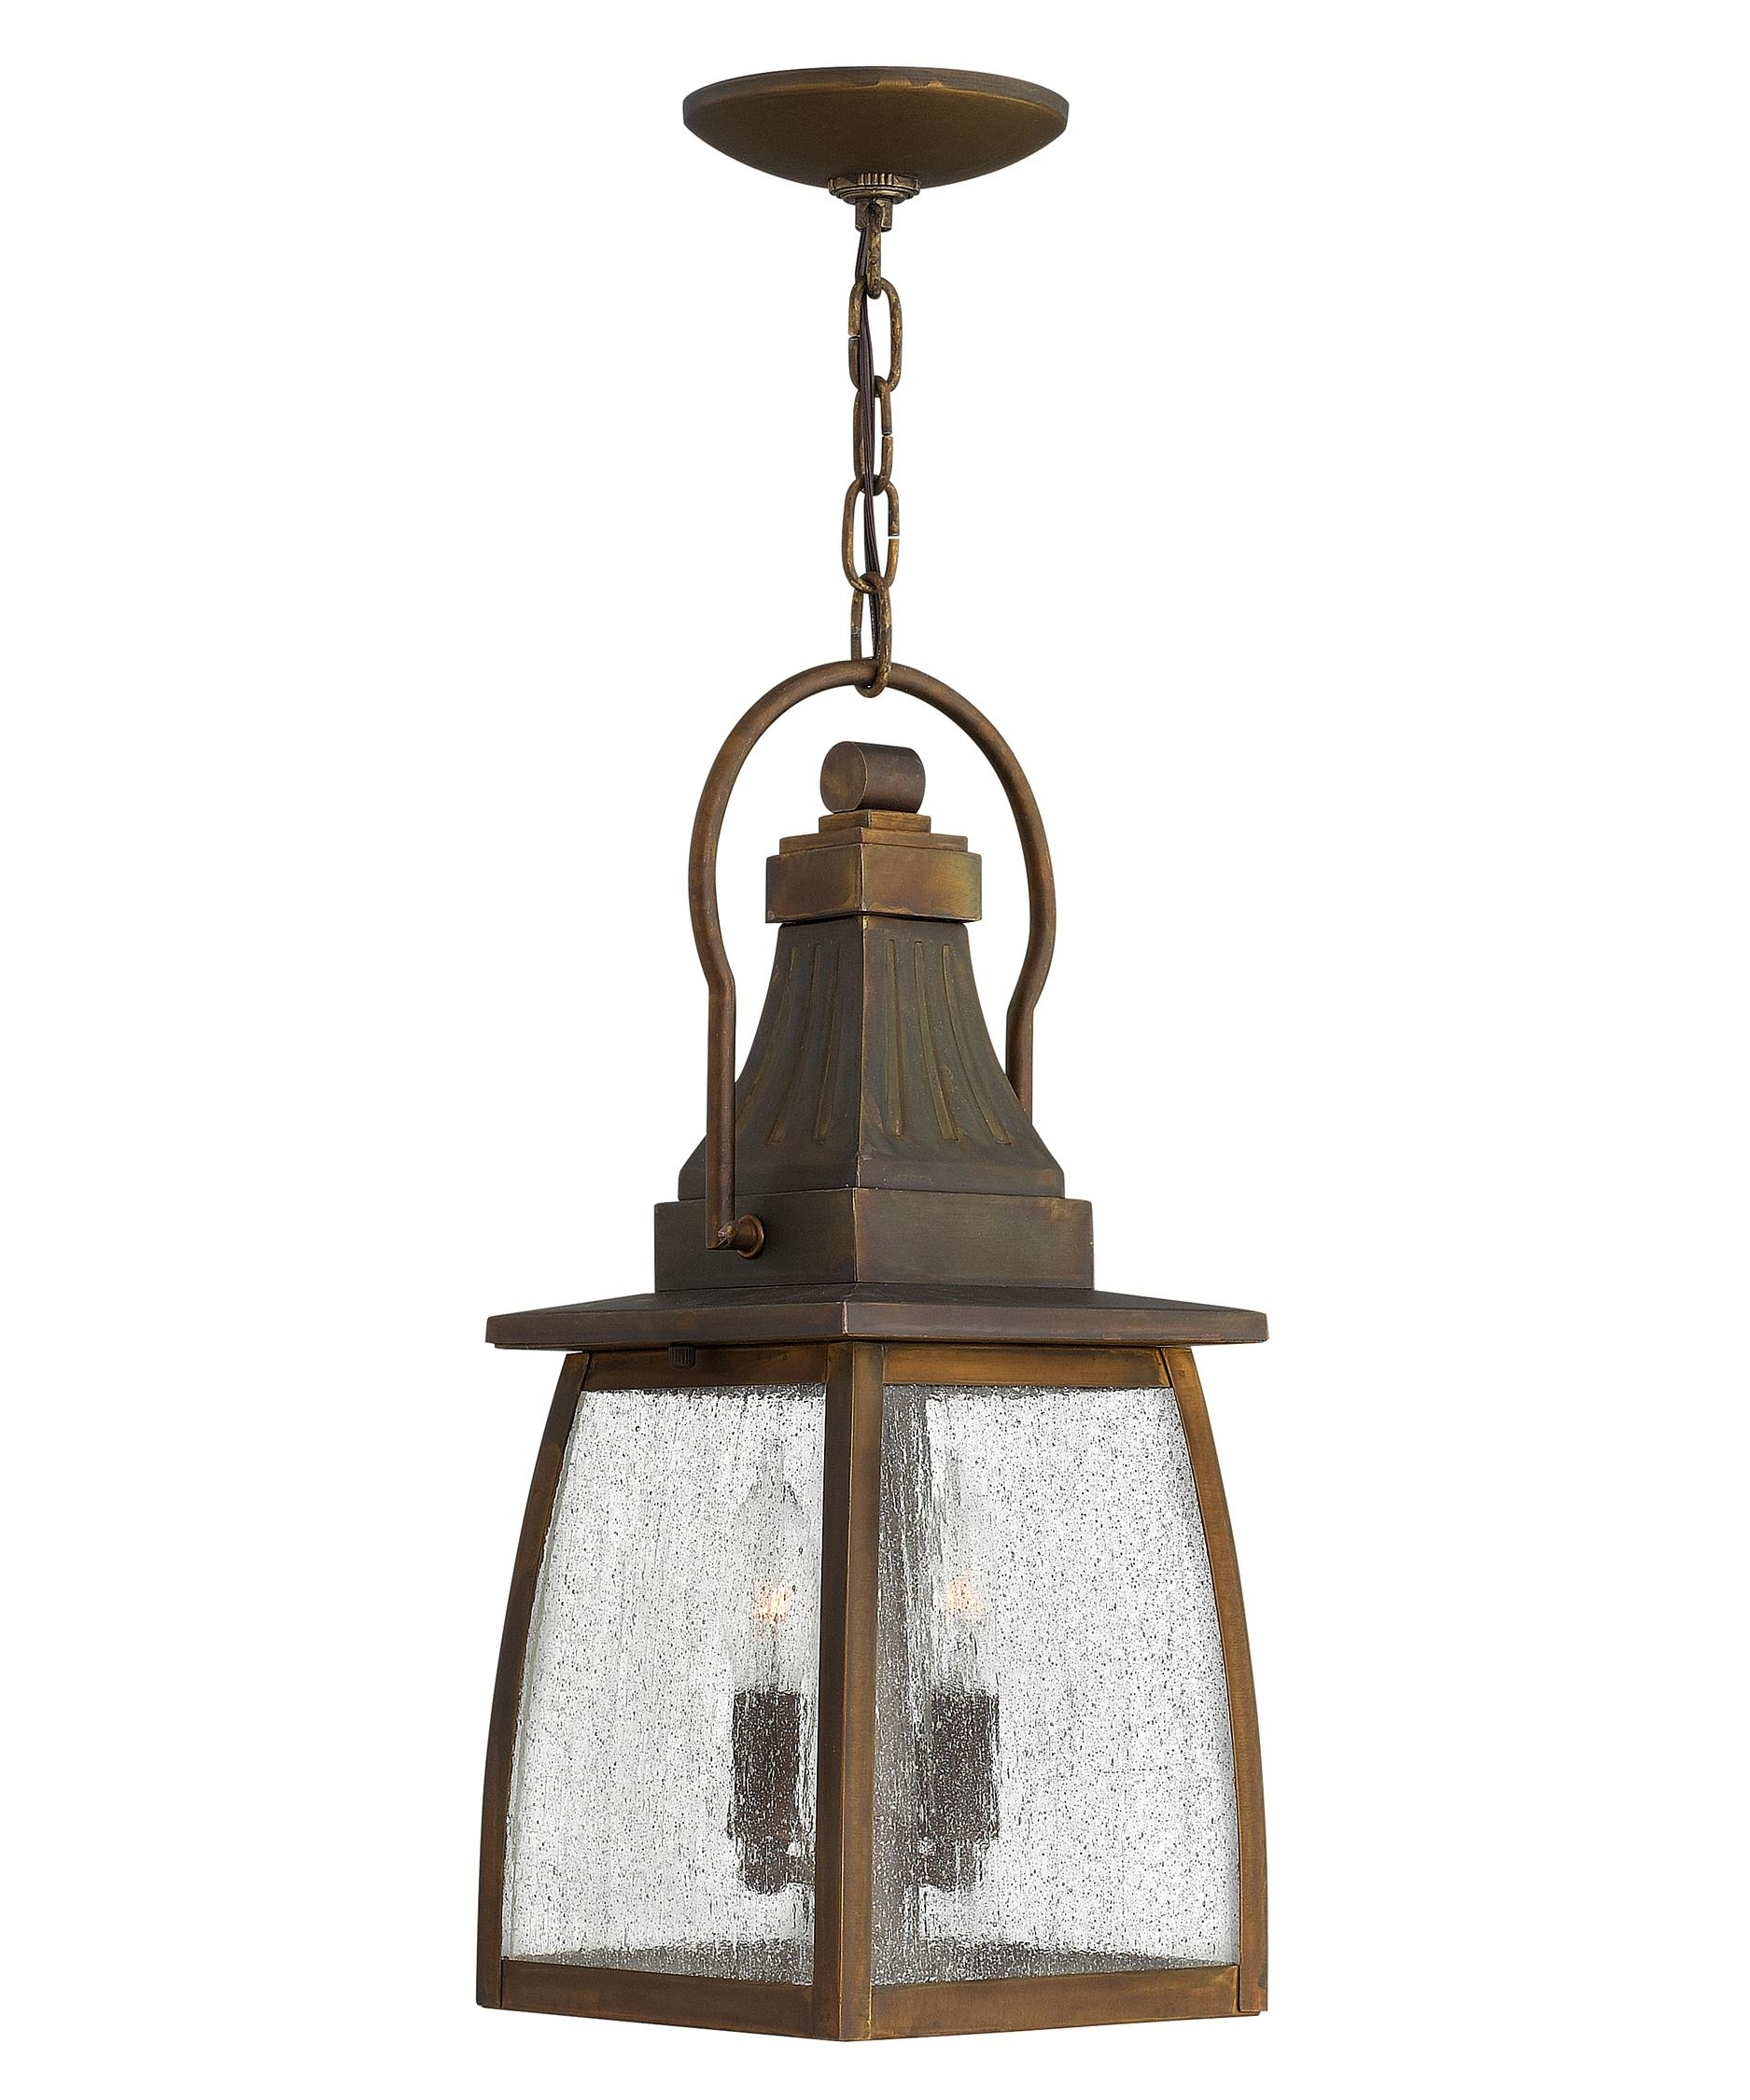 Hinkley Lighting 1202 Montauk 7 Inch Wide 2 Light Outdoor Hanging Intended For Popular Hinkley Lighting For Modern Garden (View 3 of 20)